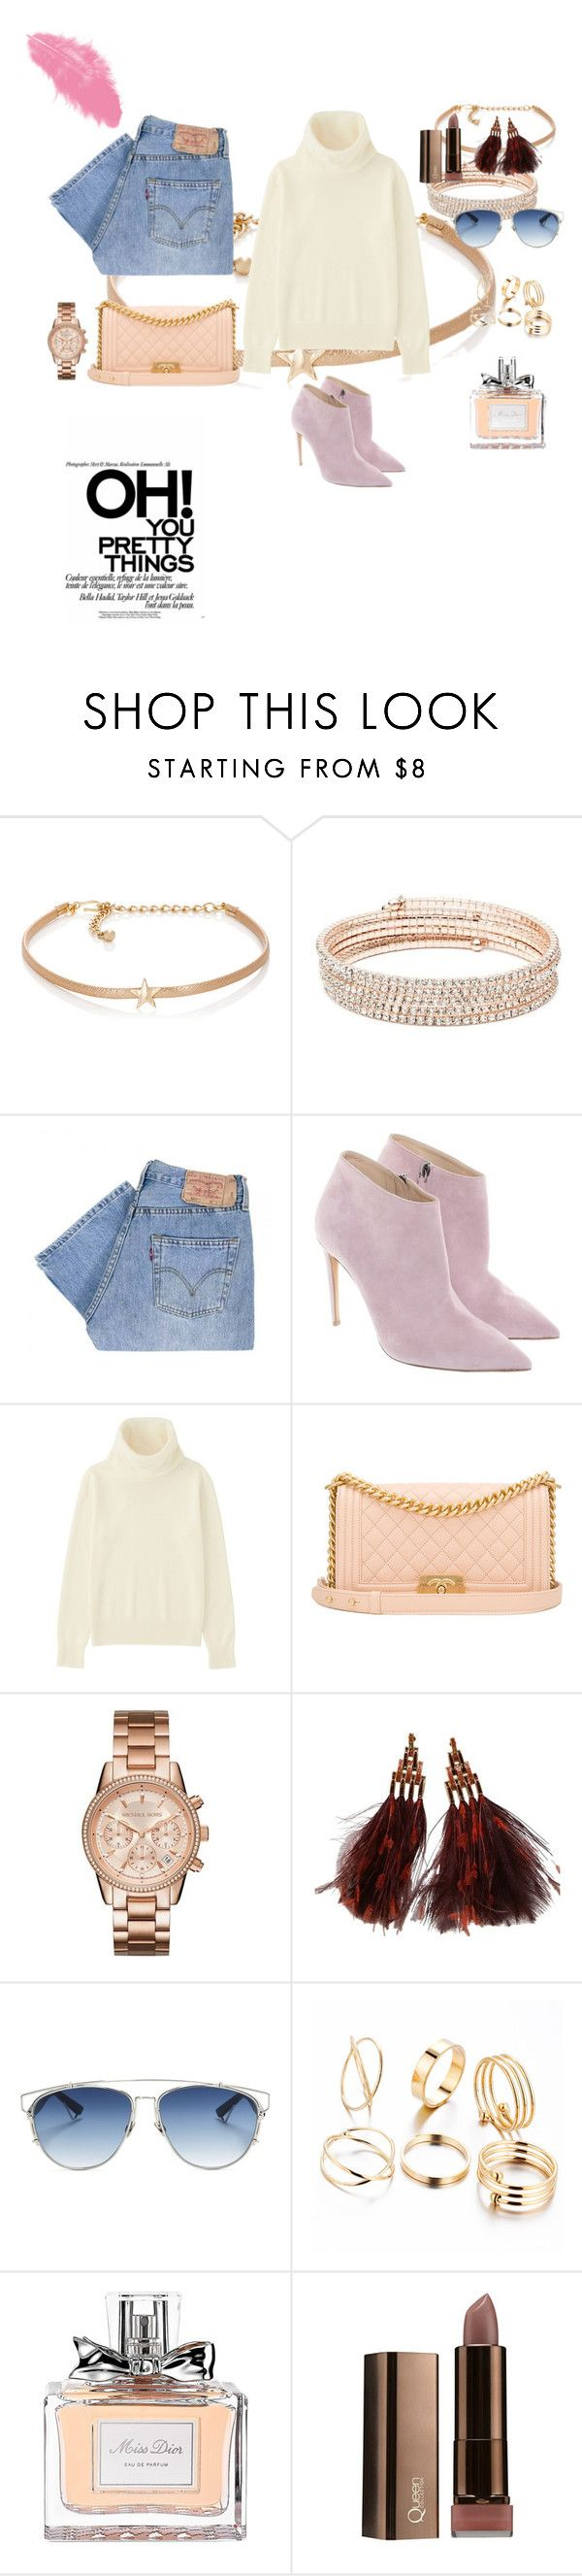 """""""#oh you pretty things !! 💜💋💋💋"""" by joe-khulan on Polyvore featuring Kenneth Jay Lane, Anne Klein, Levi's, Ralph Lauren, Uniqlo, Chanel, Louis Vuitton and Christian Dior"""